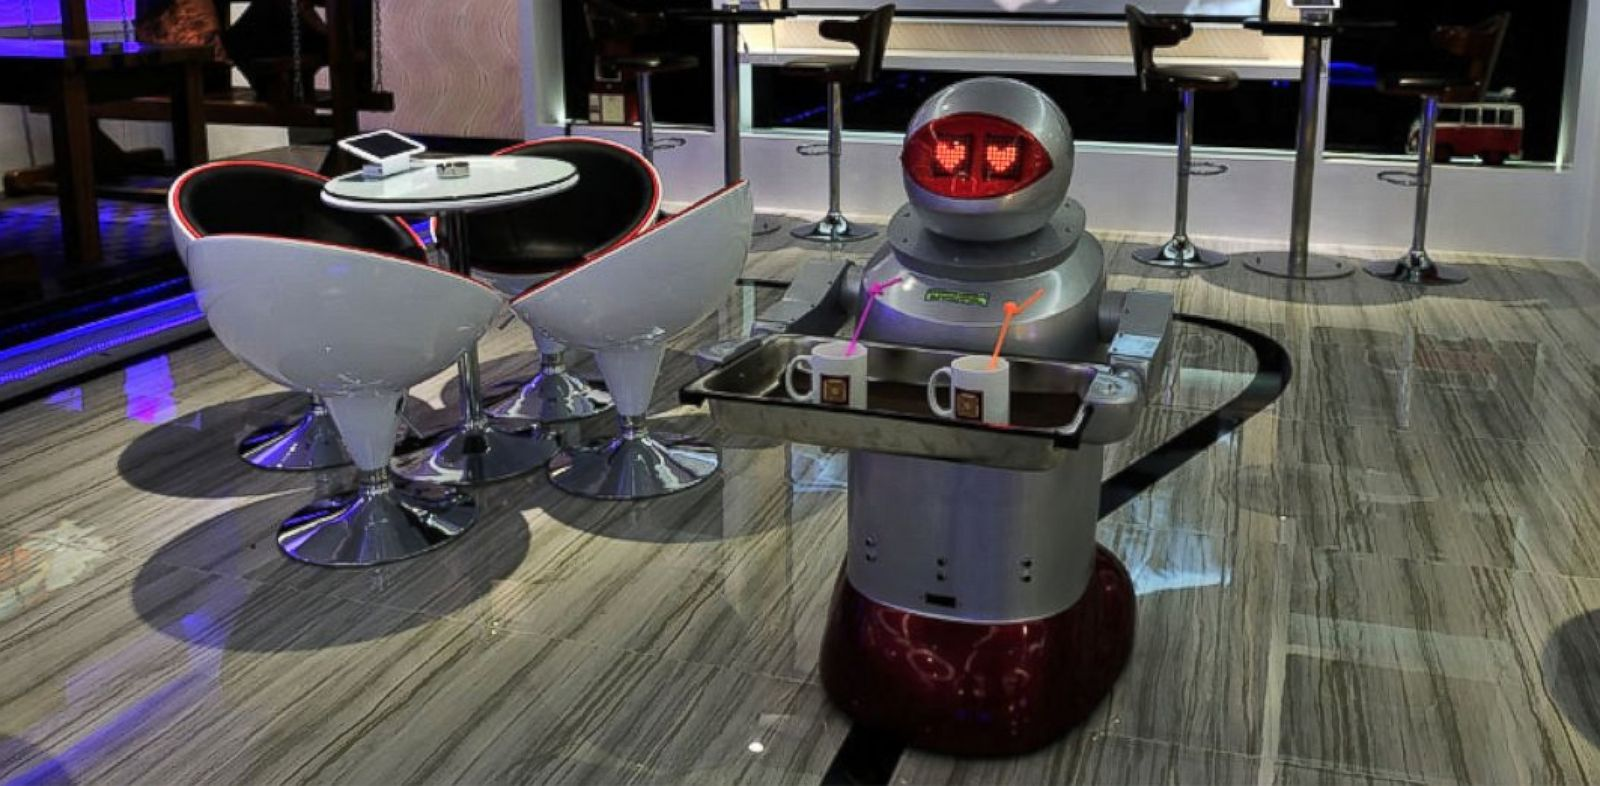 PHOTO: A space-themed hotel in Shenzhen, China is almost entirely run by robots.